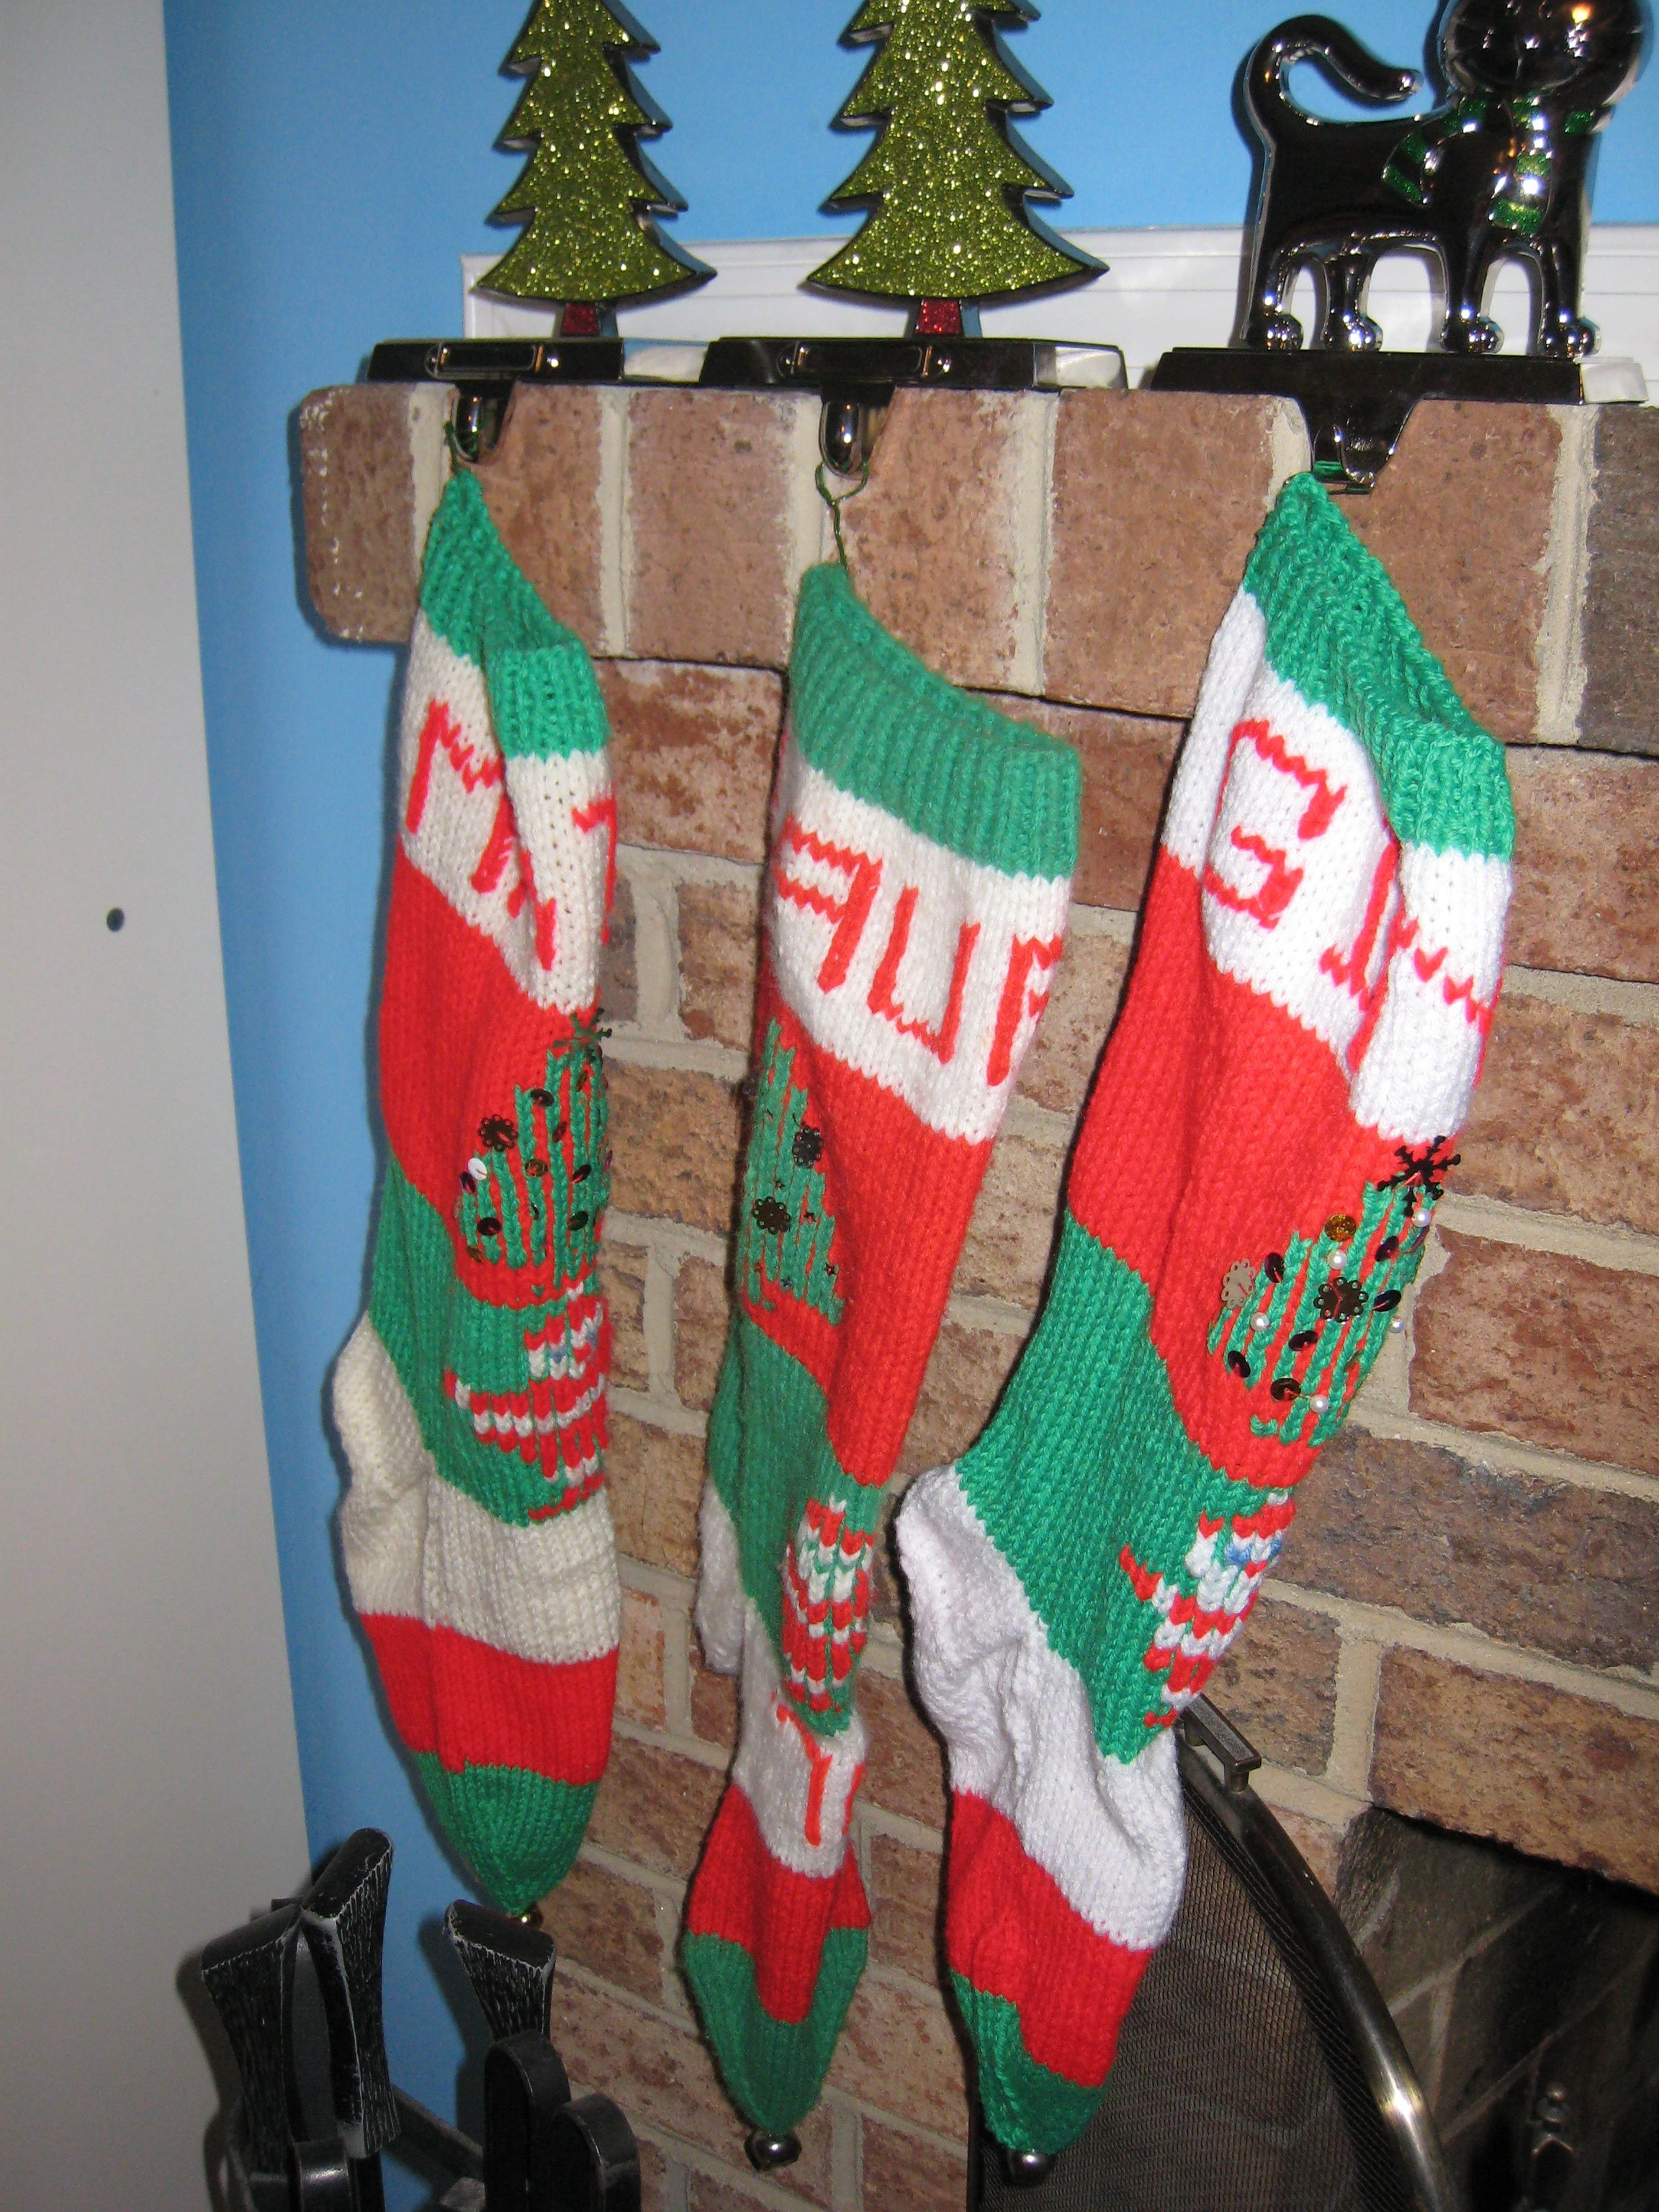 Awesome knit christmas stockings with multicolorful christmas stocking and fireplace at chistmas day interior design